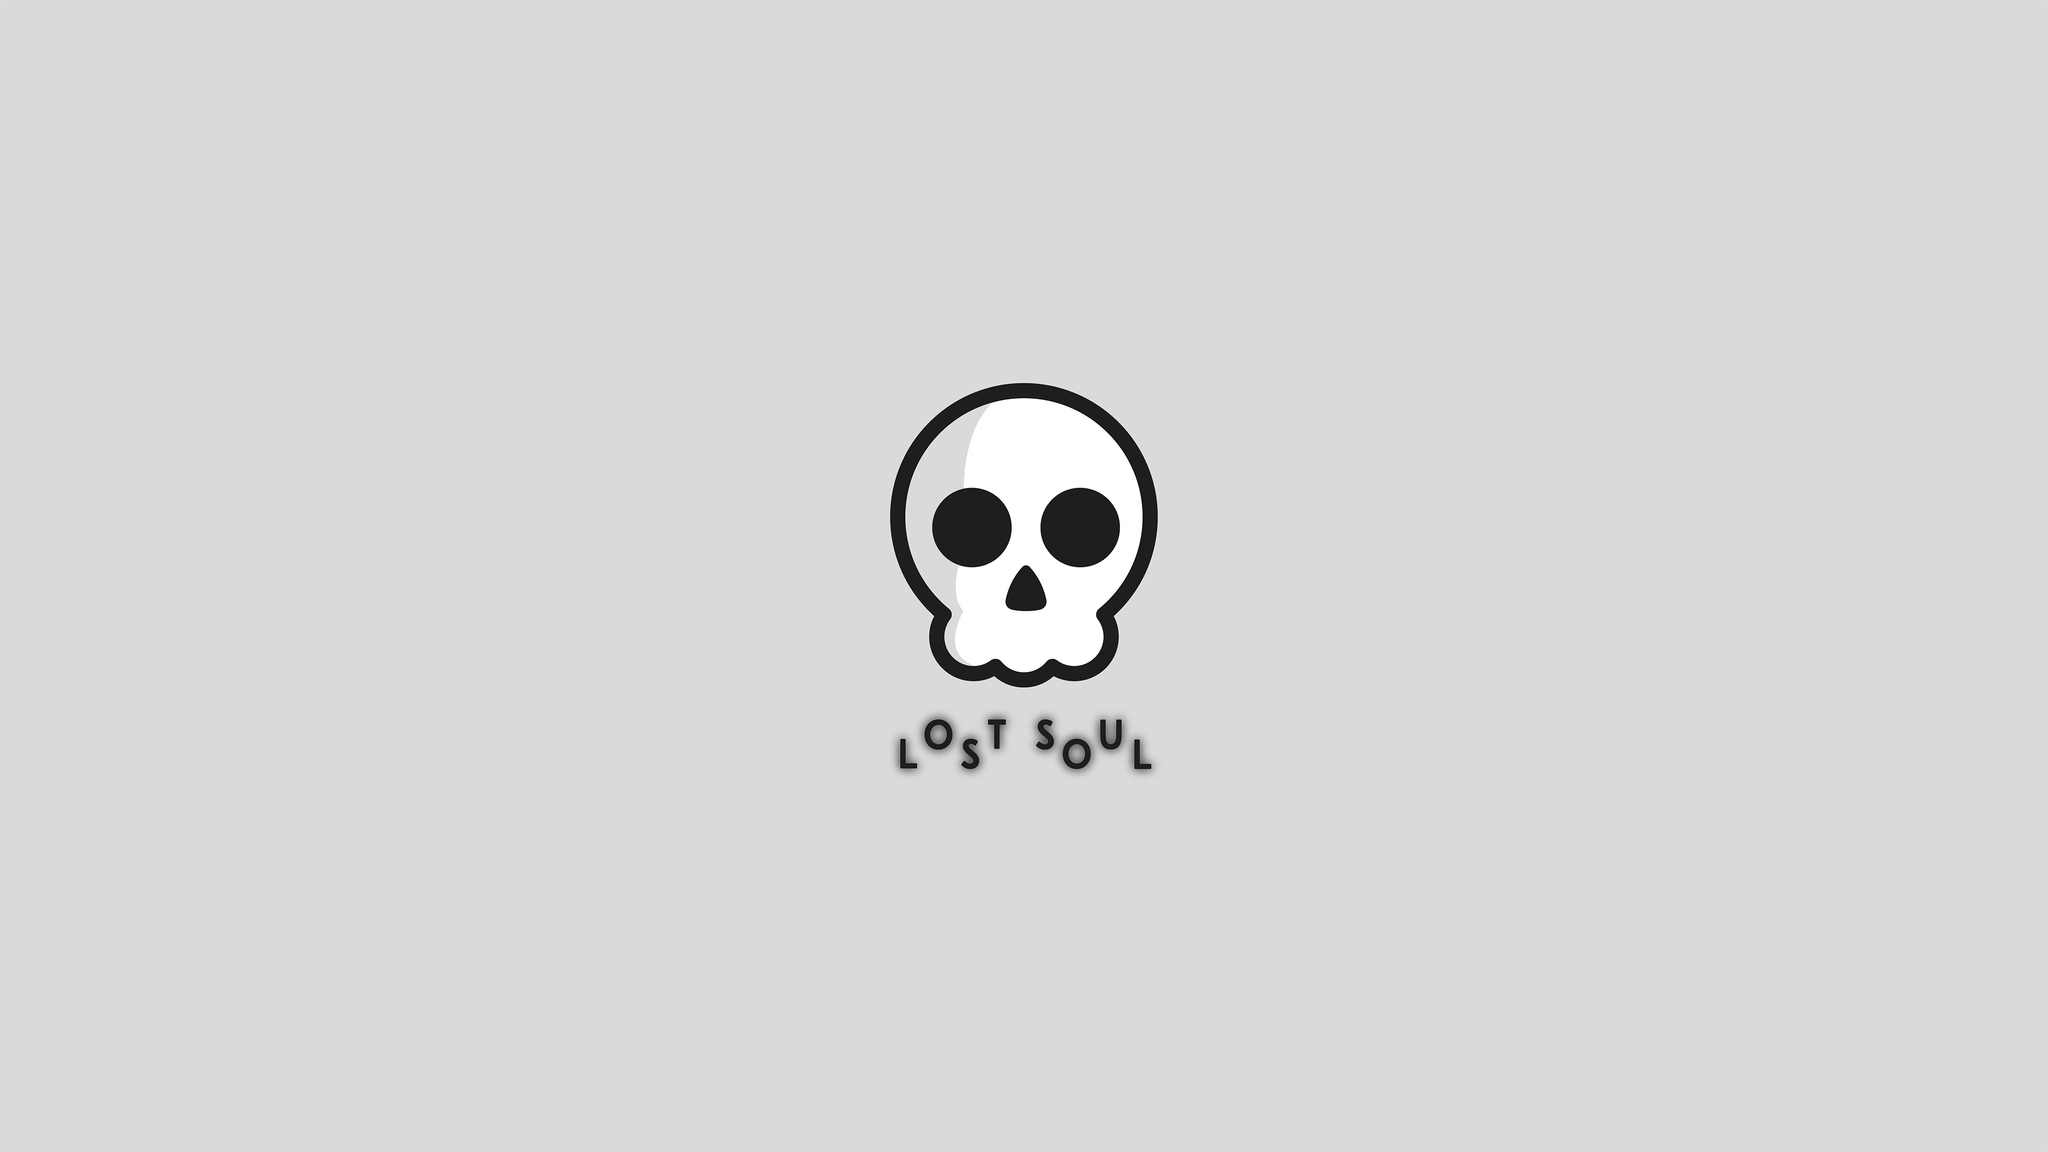 lost-soul-white-background-minimal-4k-dy.jpg